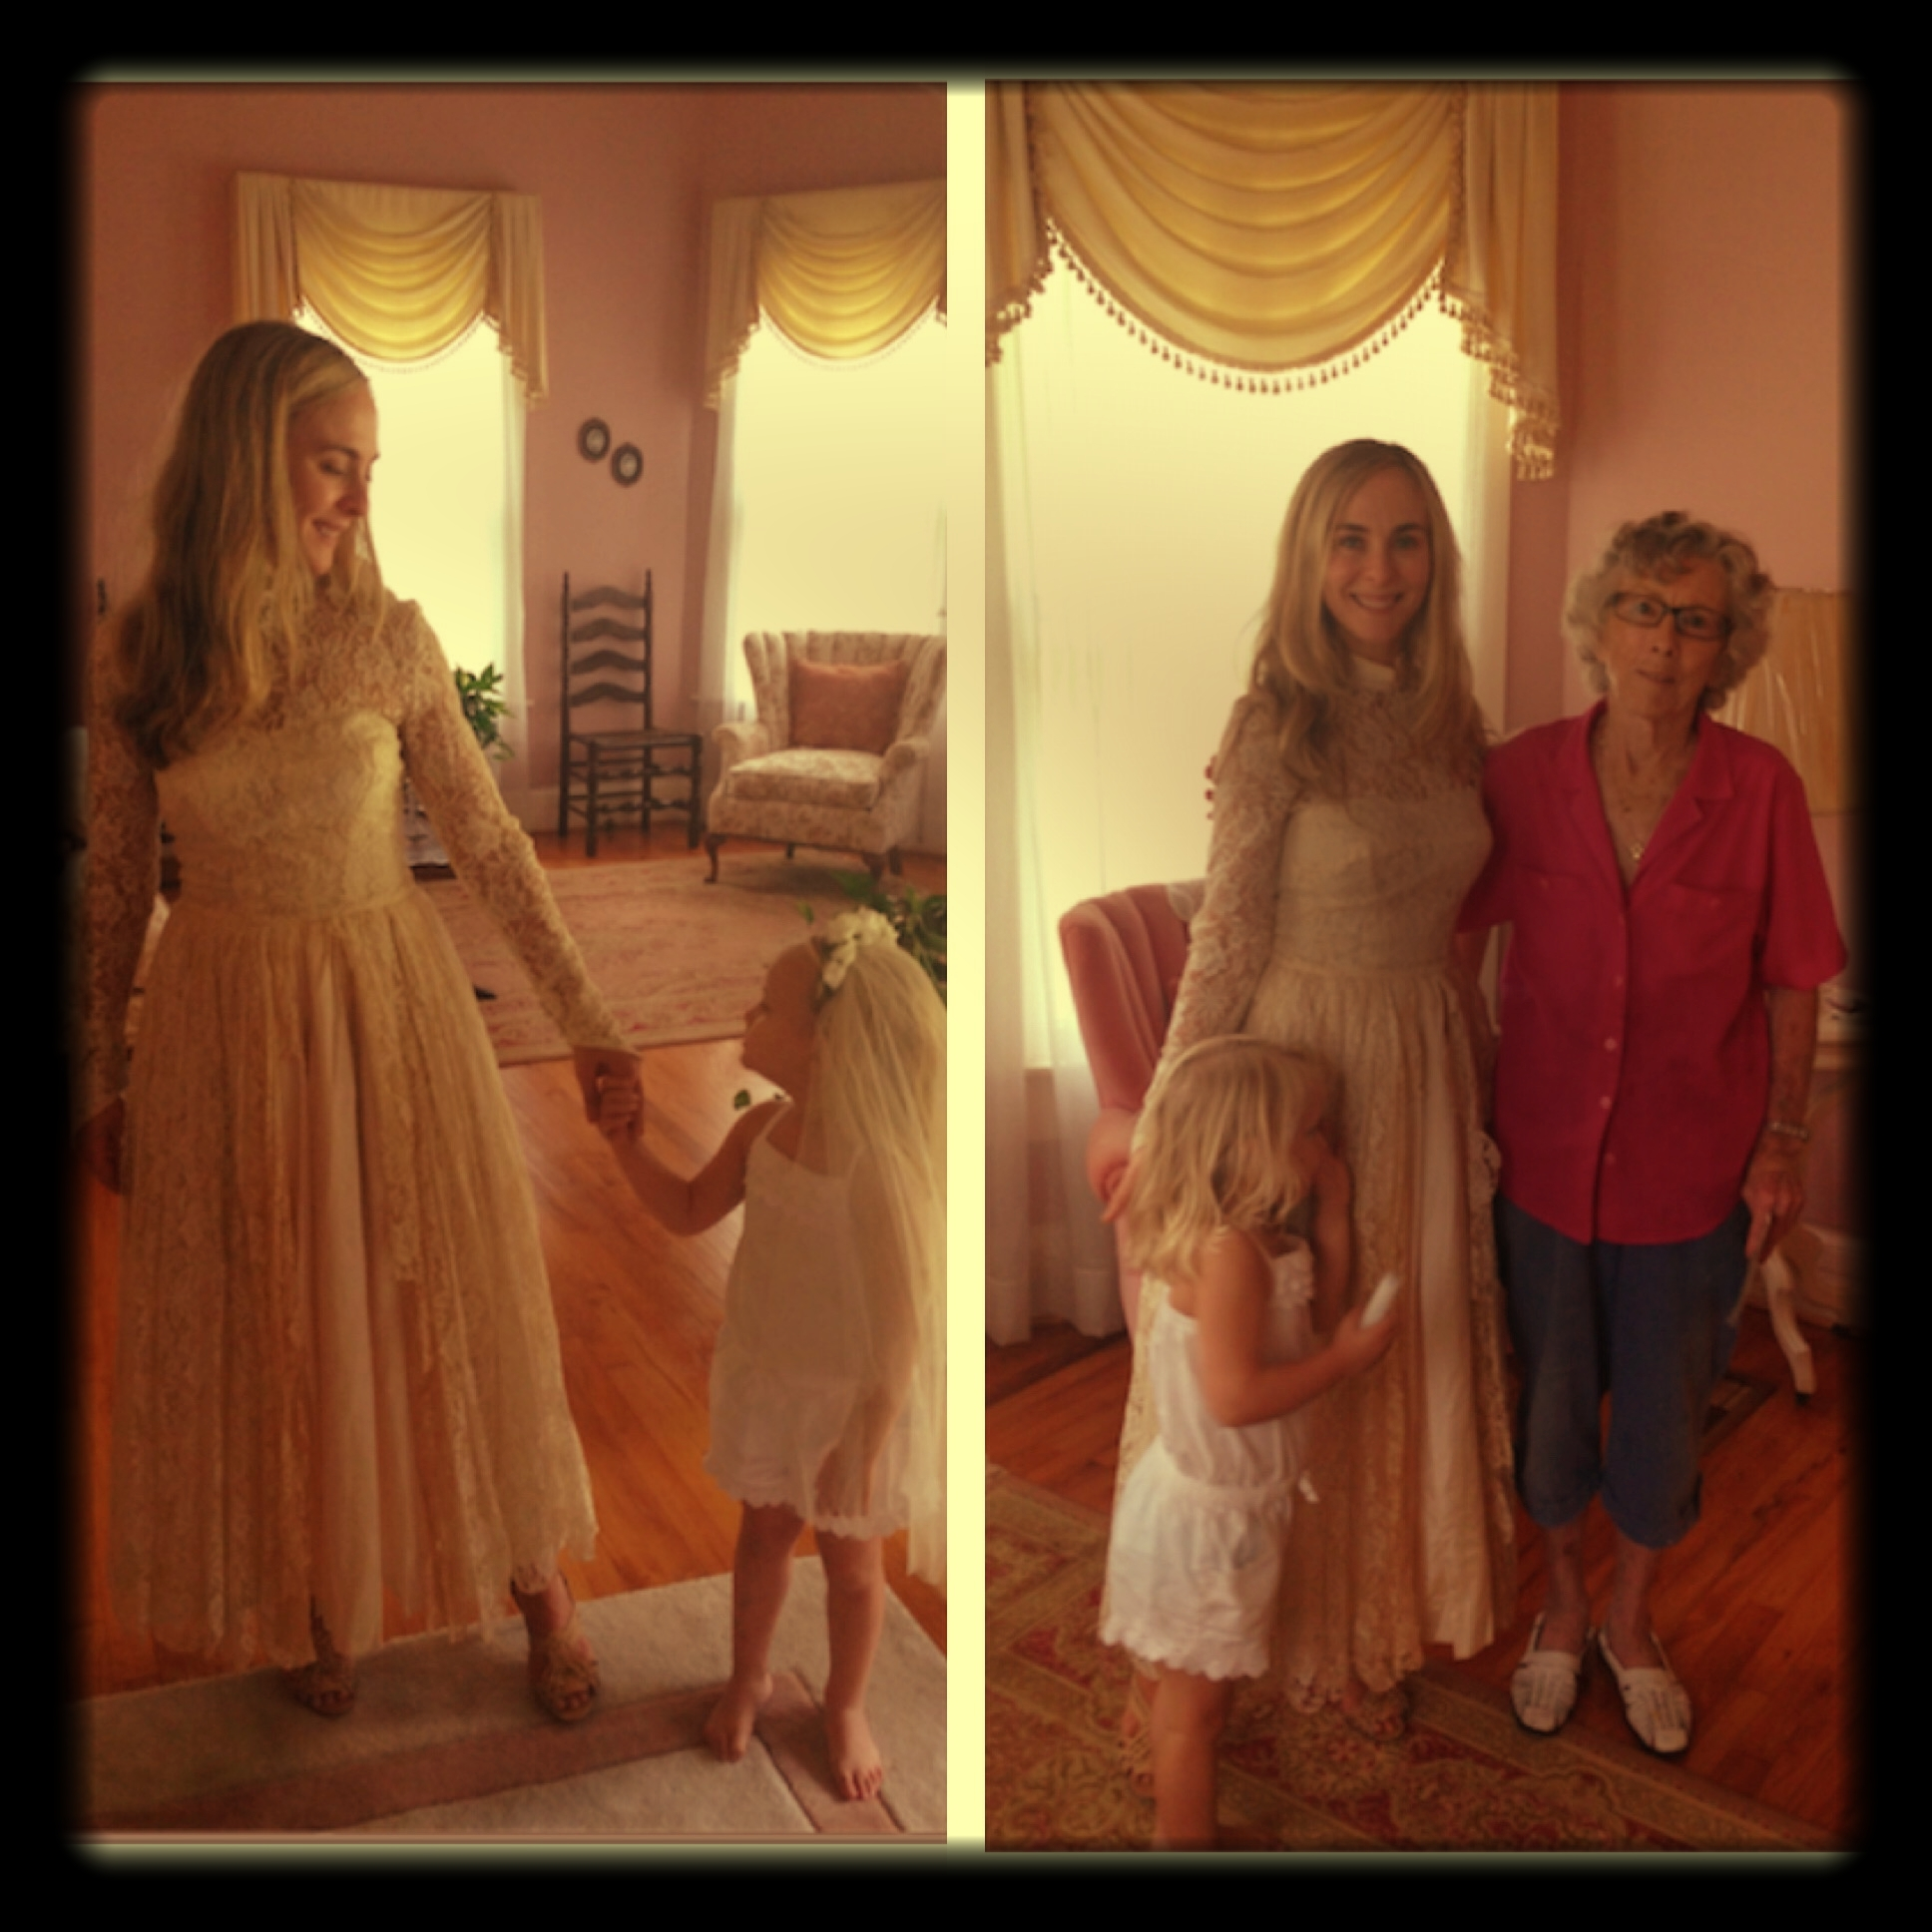 Grandmother's wedding dress. I am comforted knowing that she is with Granddaddy again. September 2013